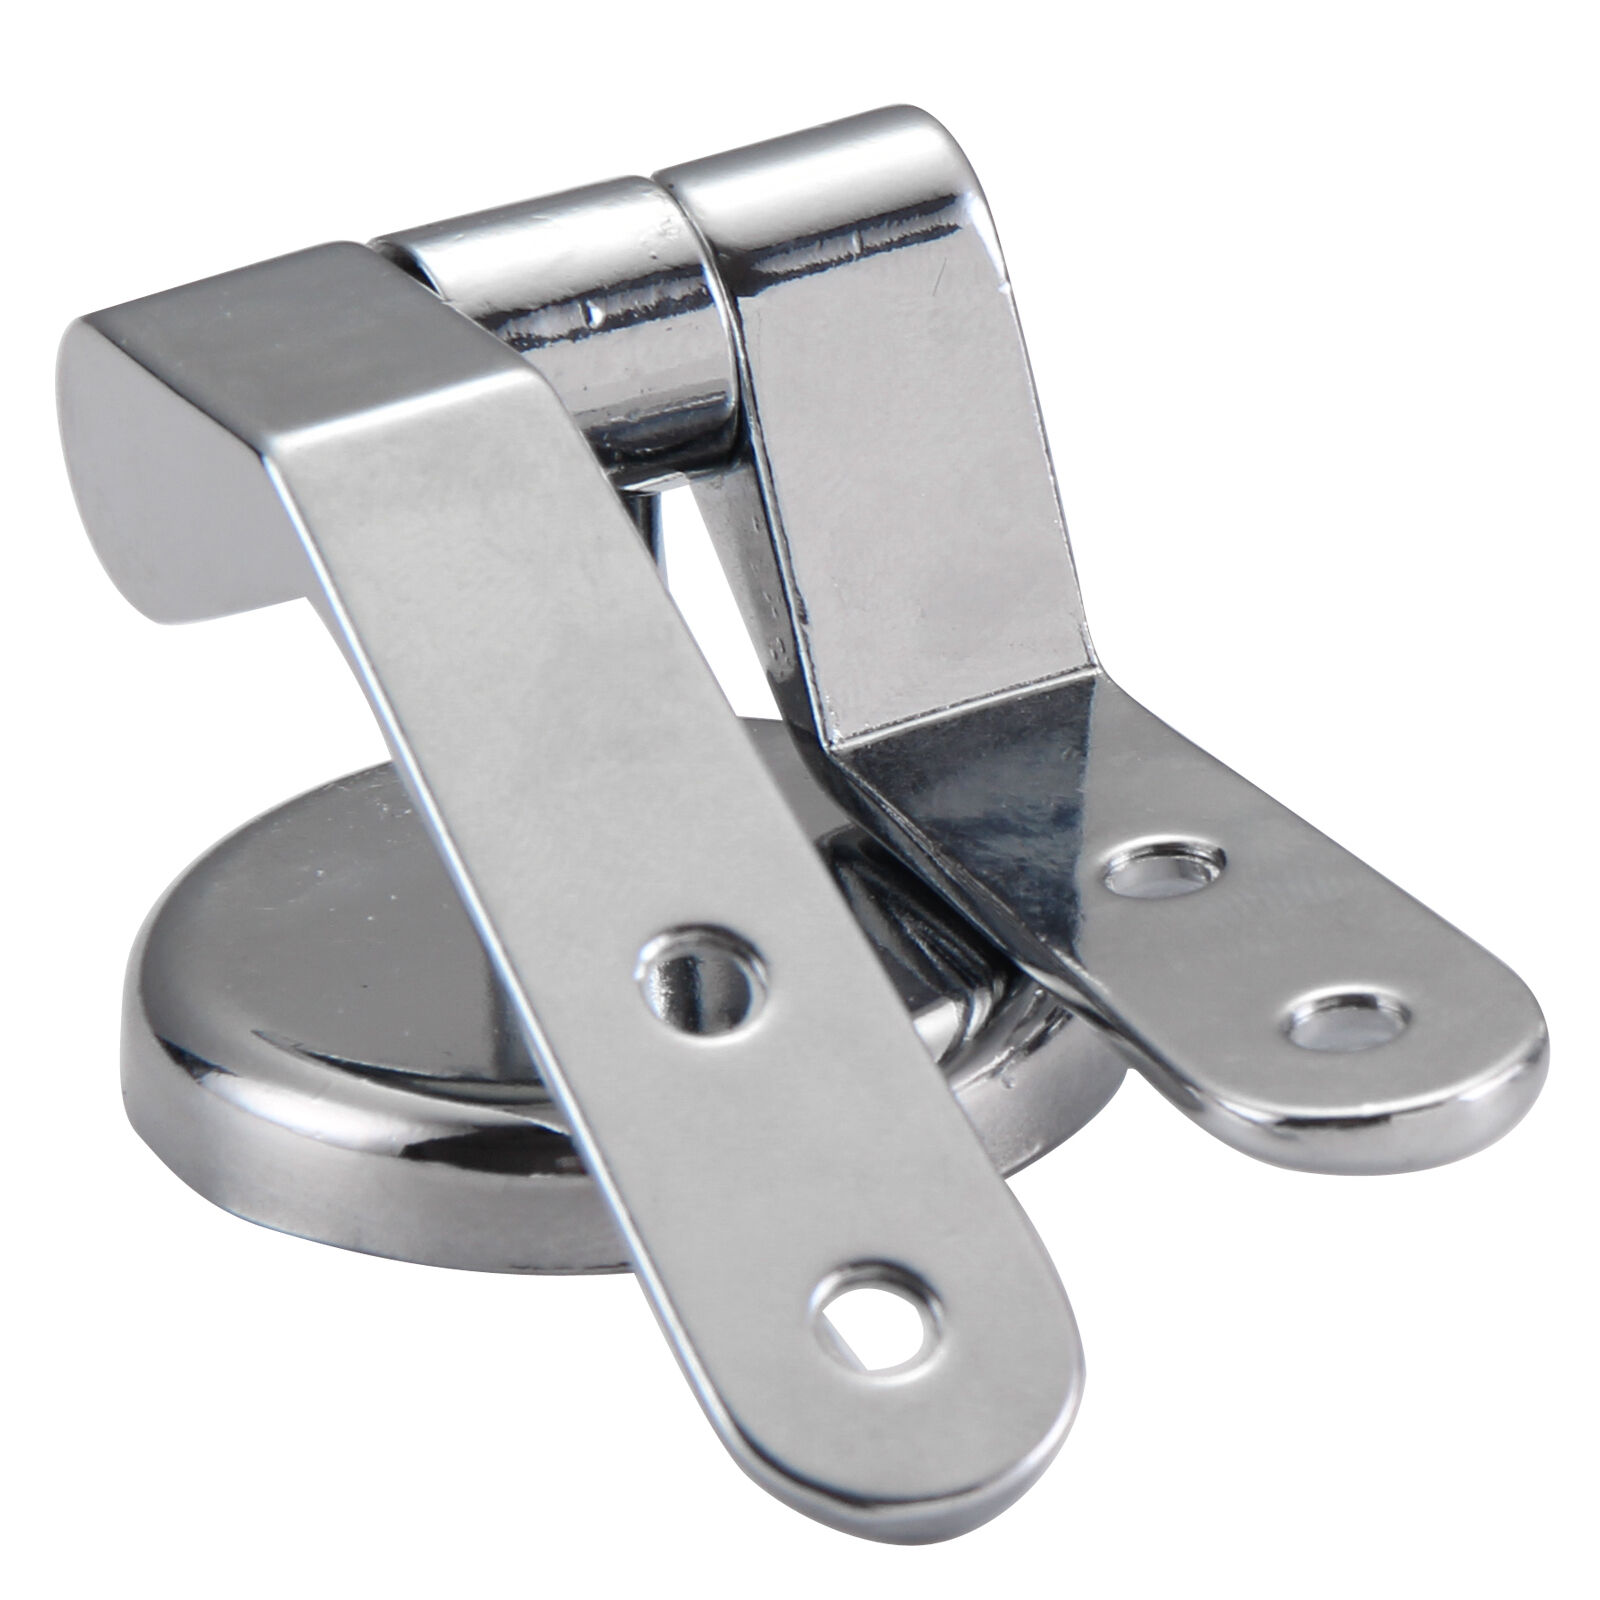 Replacement Polished Chrome Wc Toilet Seat Hinges Fittings